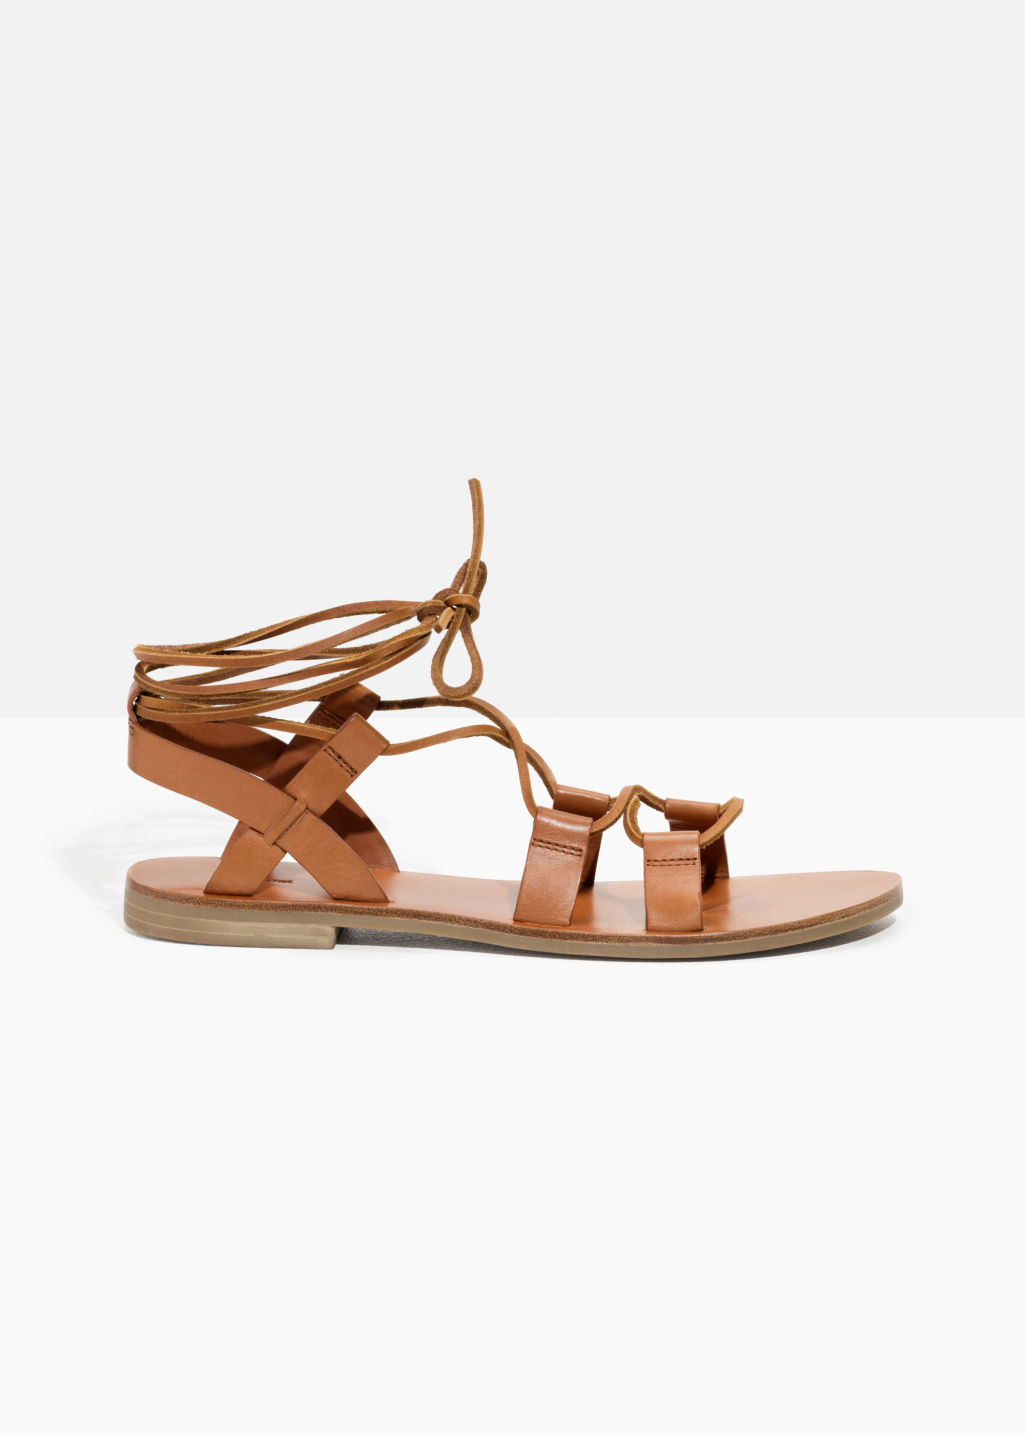 & OTHER STORIES Metallic Gladiator Strappy Sandals 0skhj0WSc0